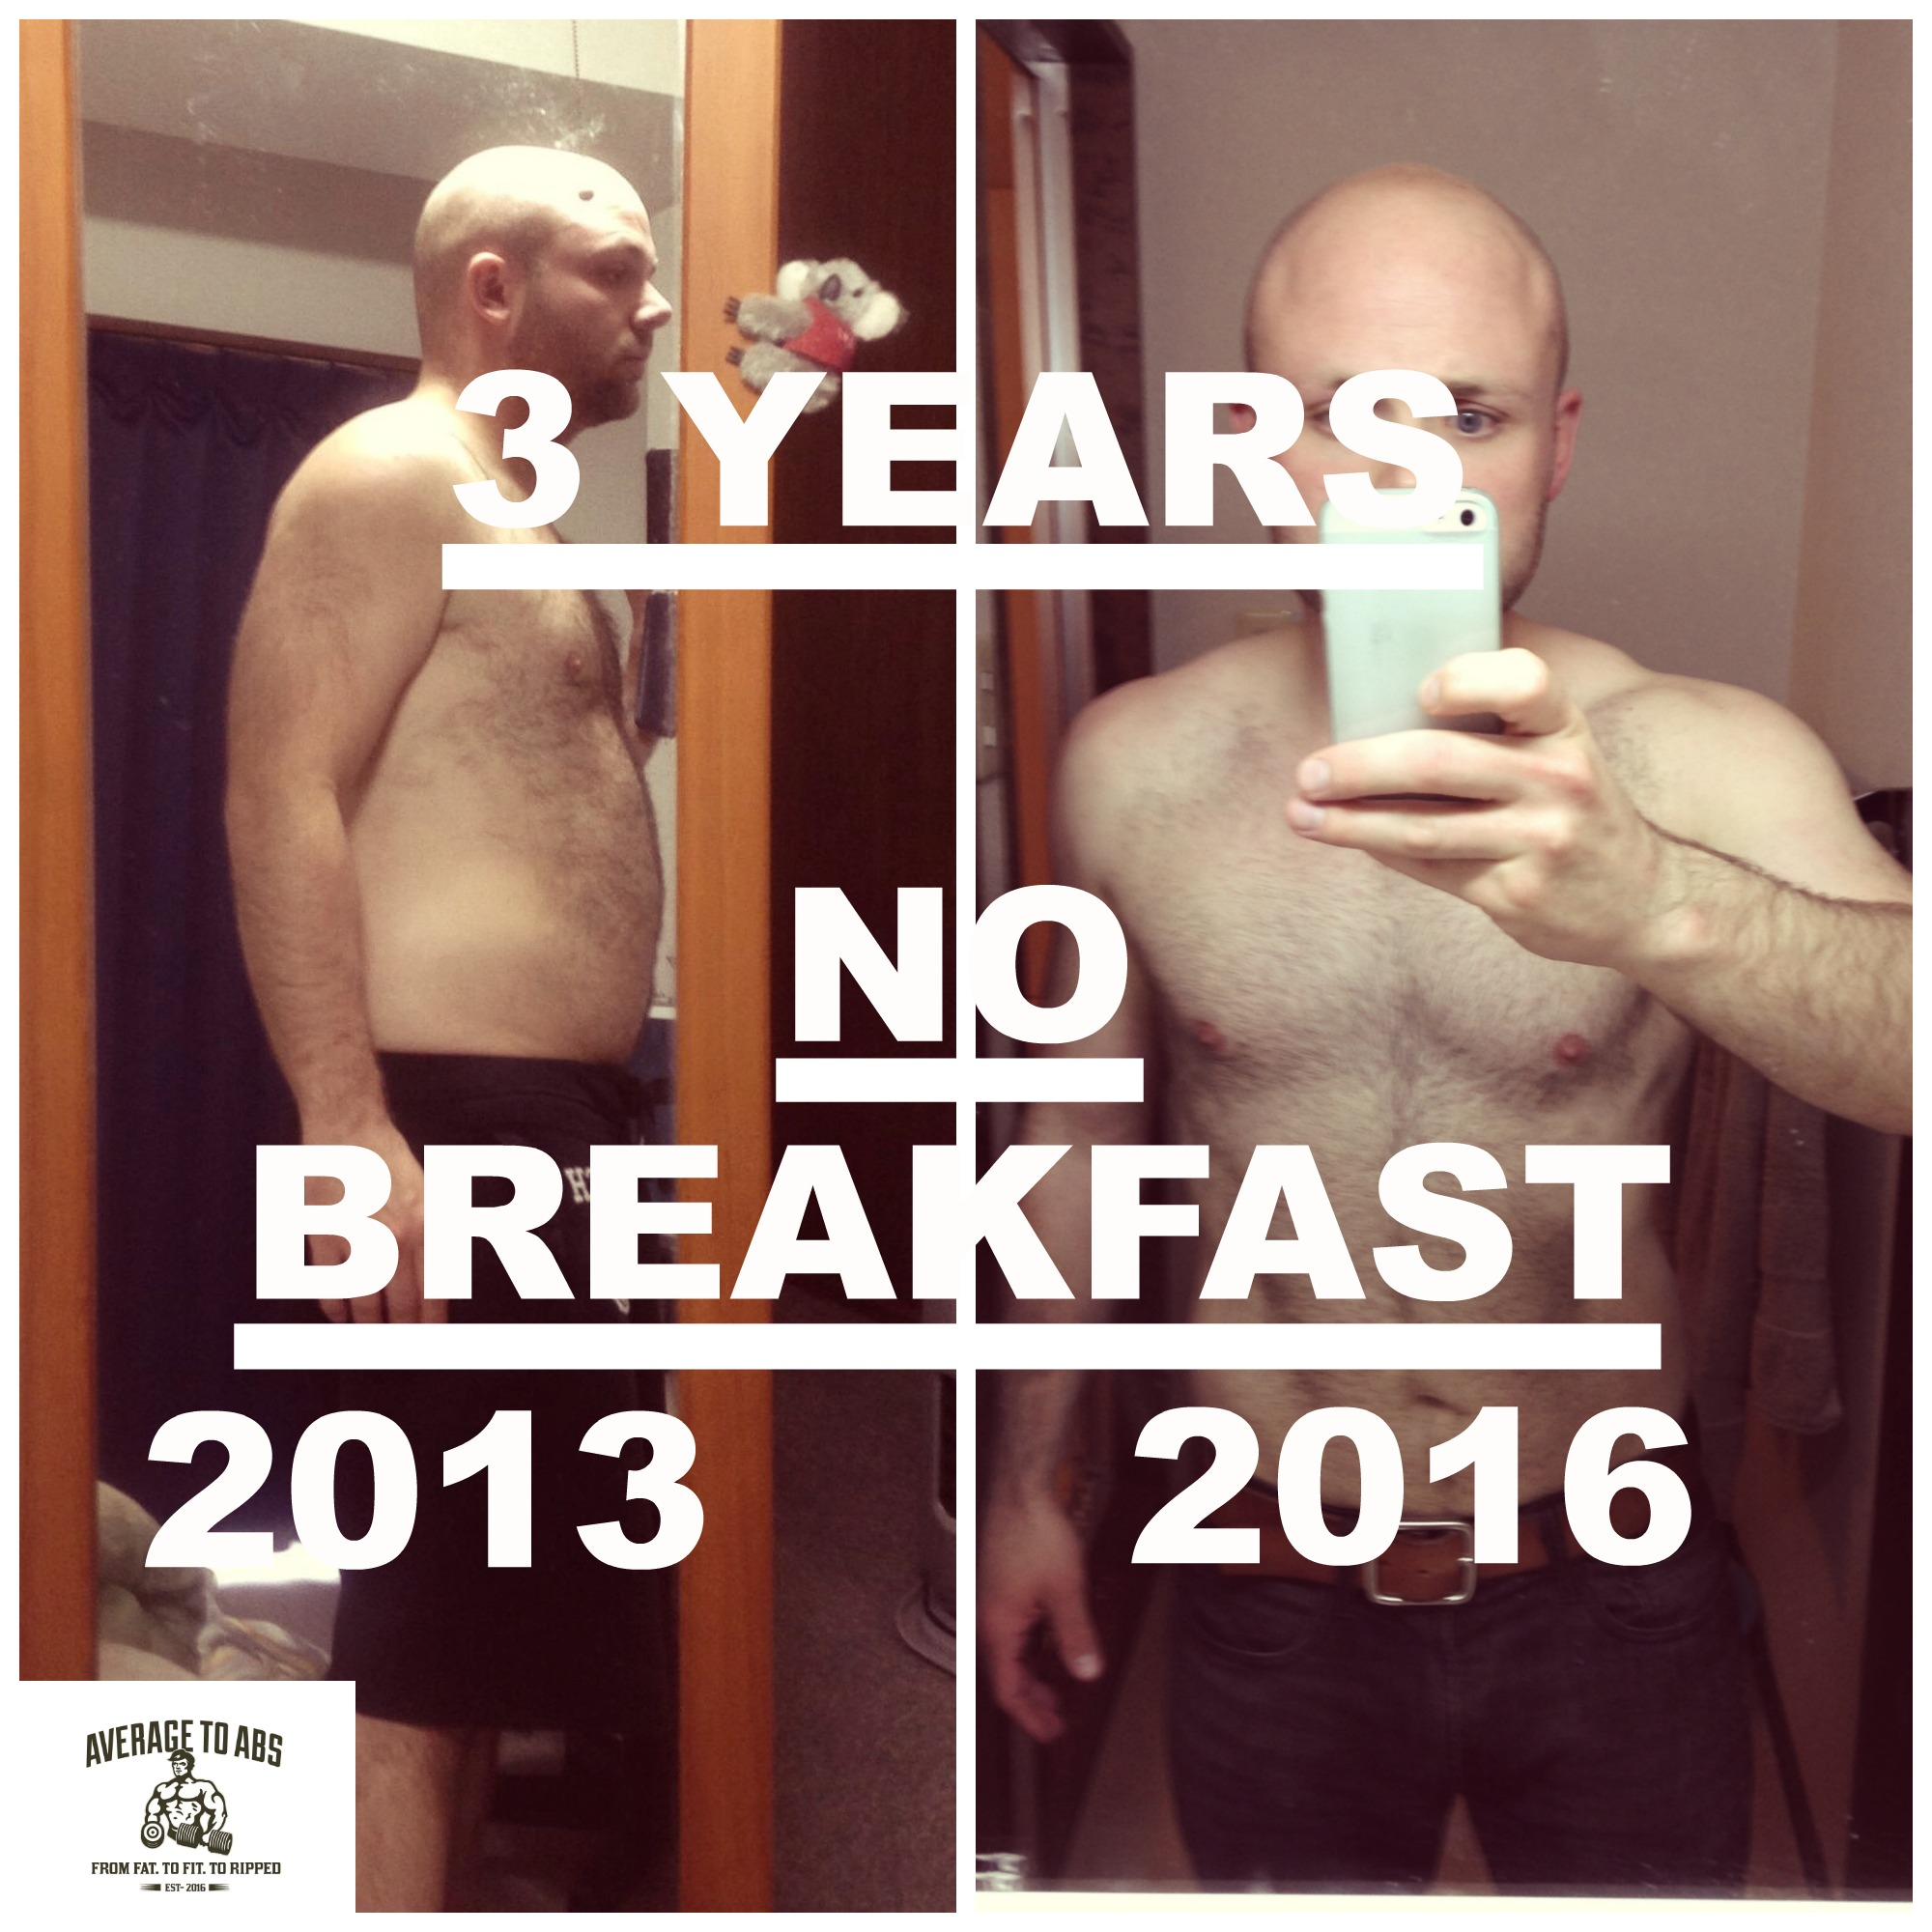 3 Years No Breakfast